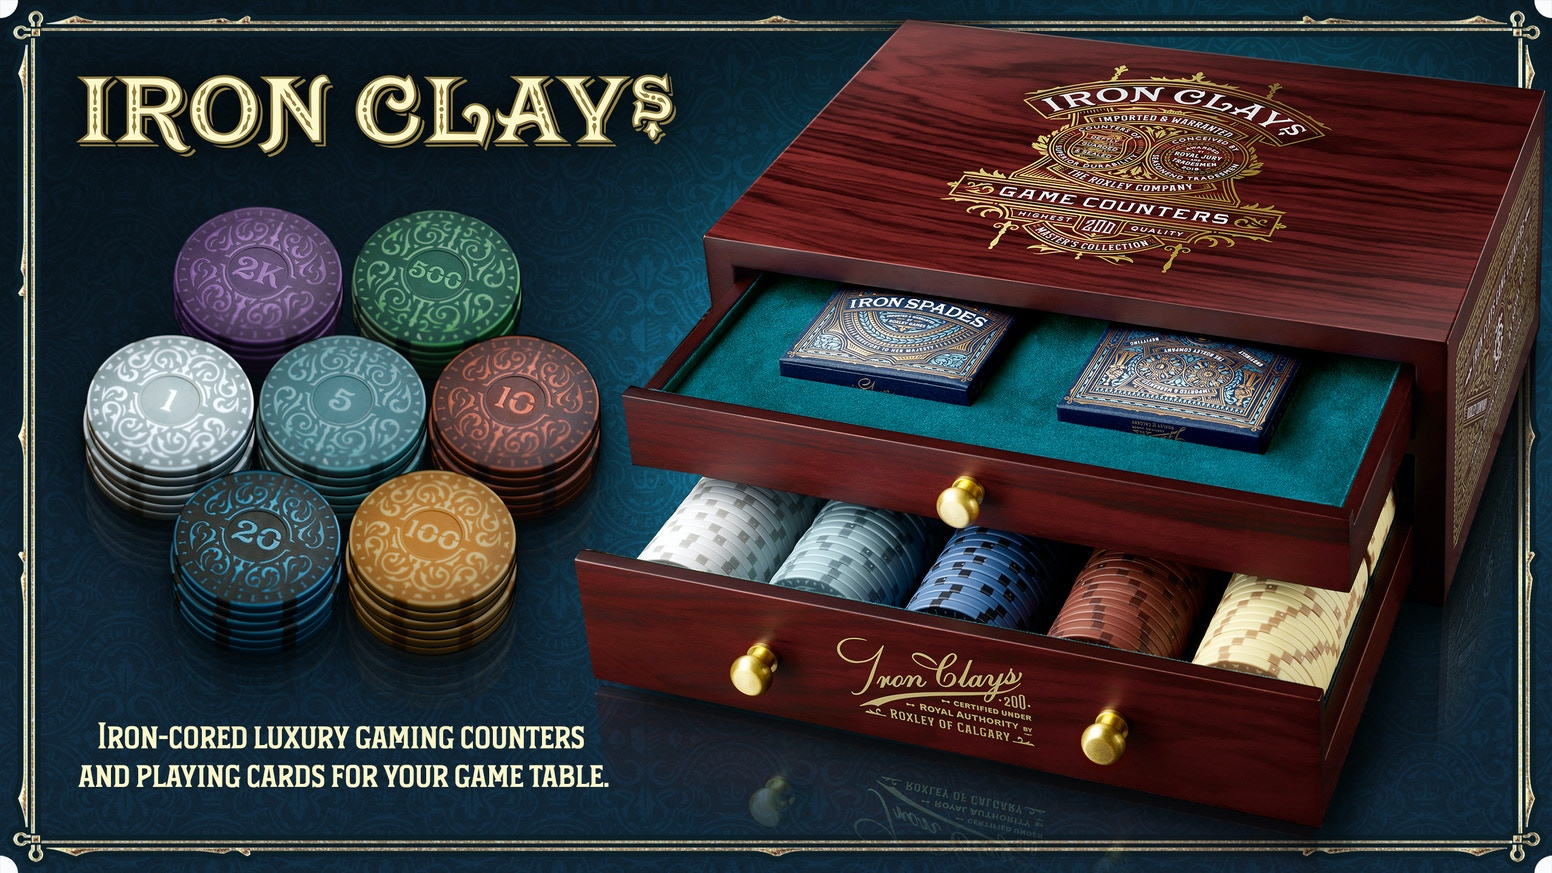 Luxury tabletop game counters with elegant storage container & beautifully designed playing cards in letter pressed box.